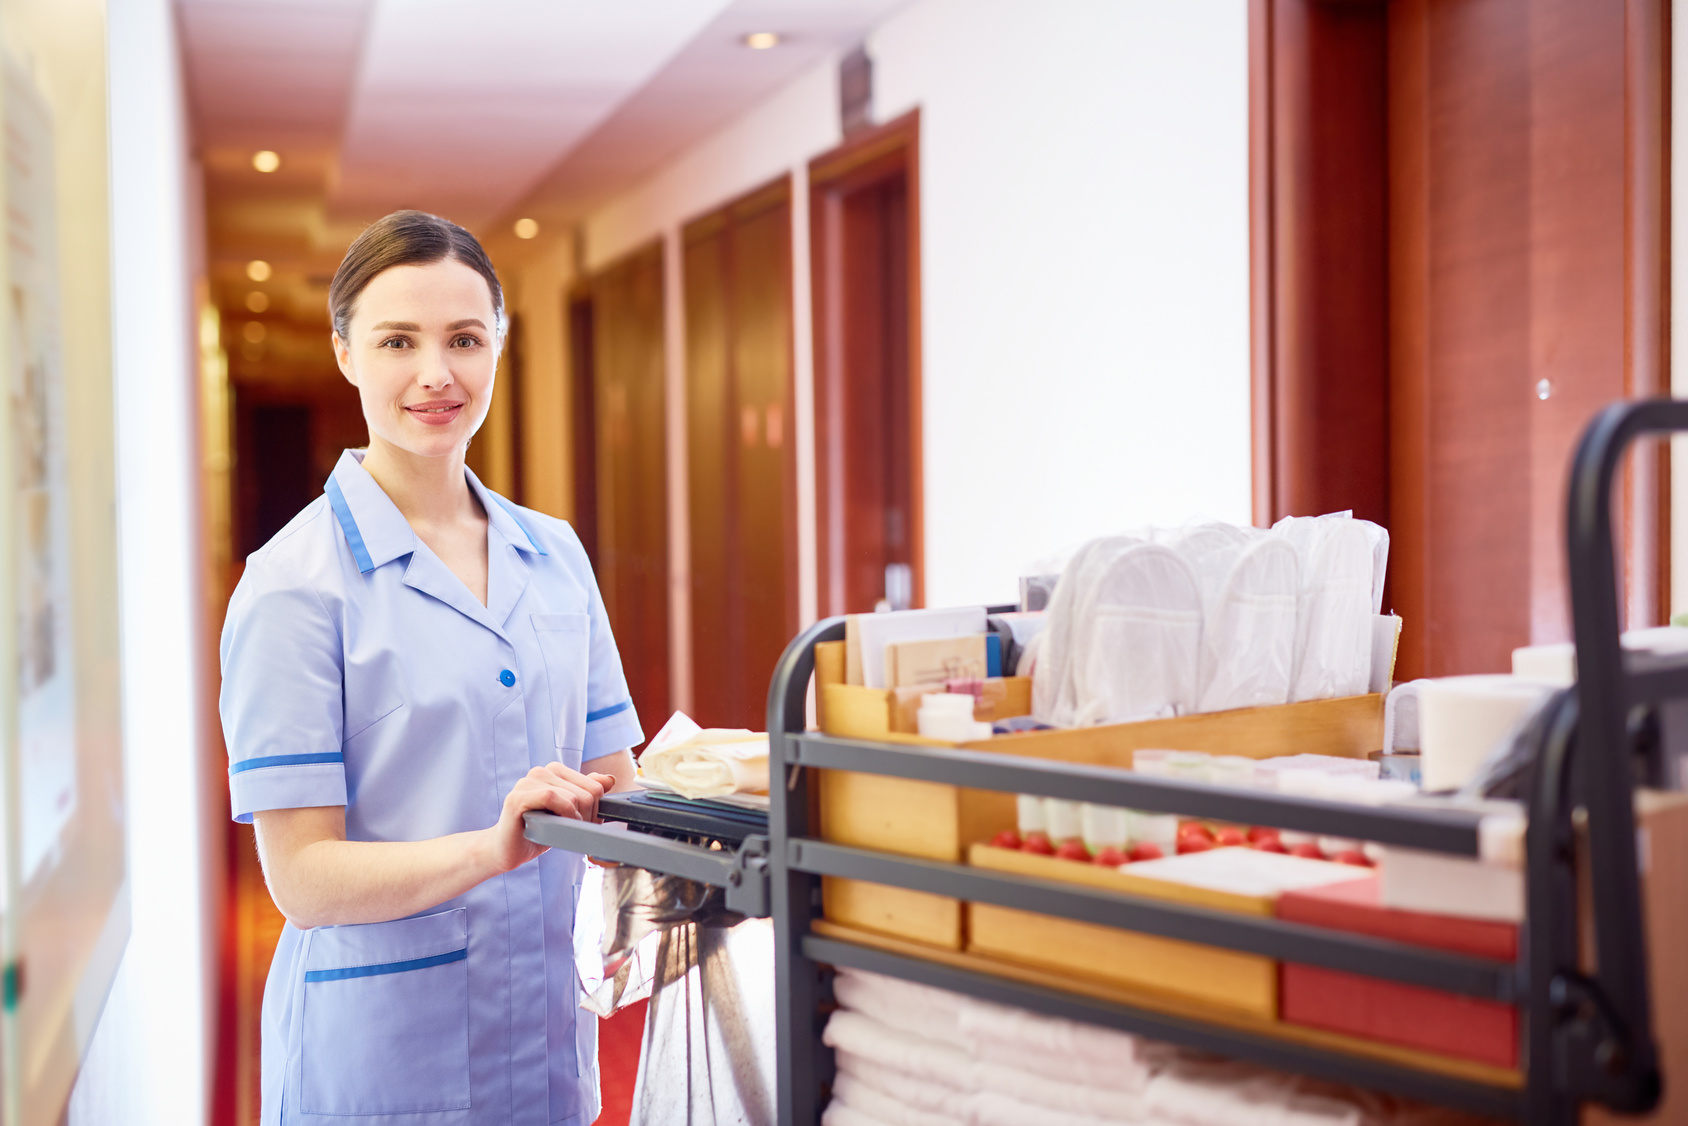 Housekeeping uniforms & toiletries